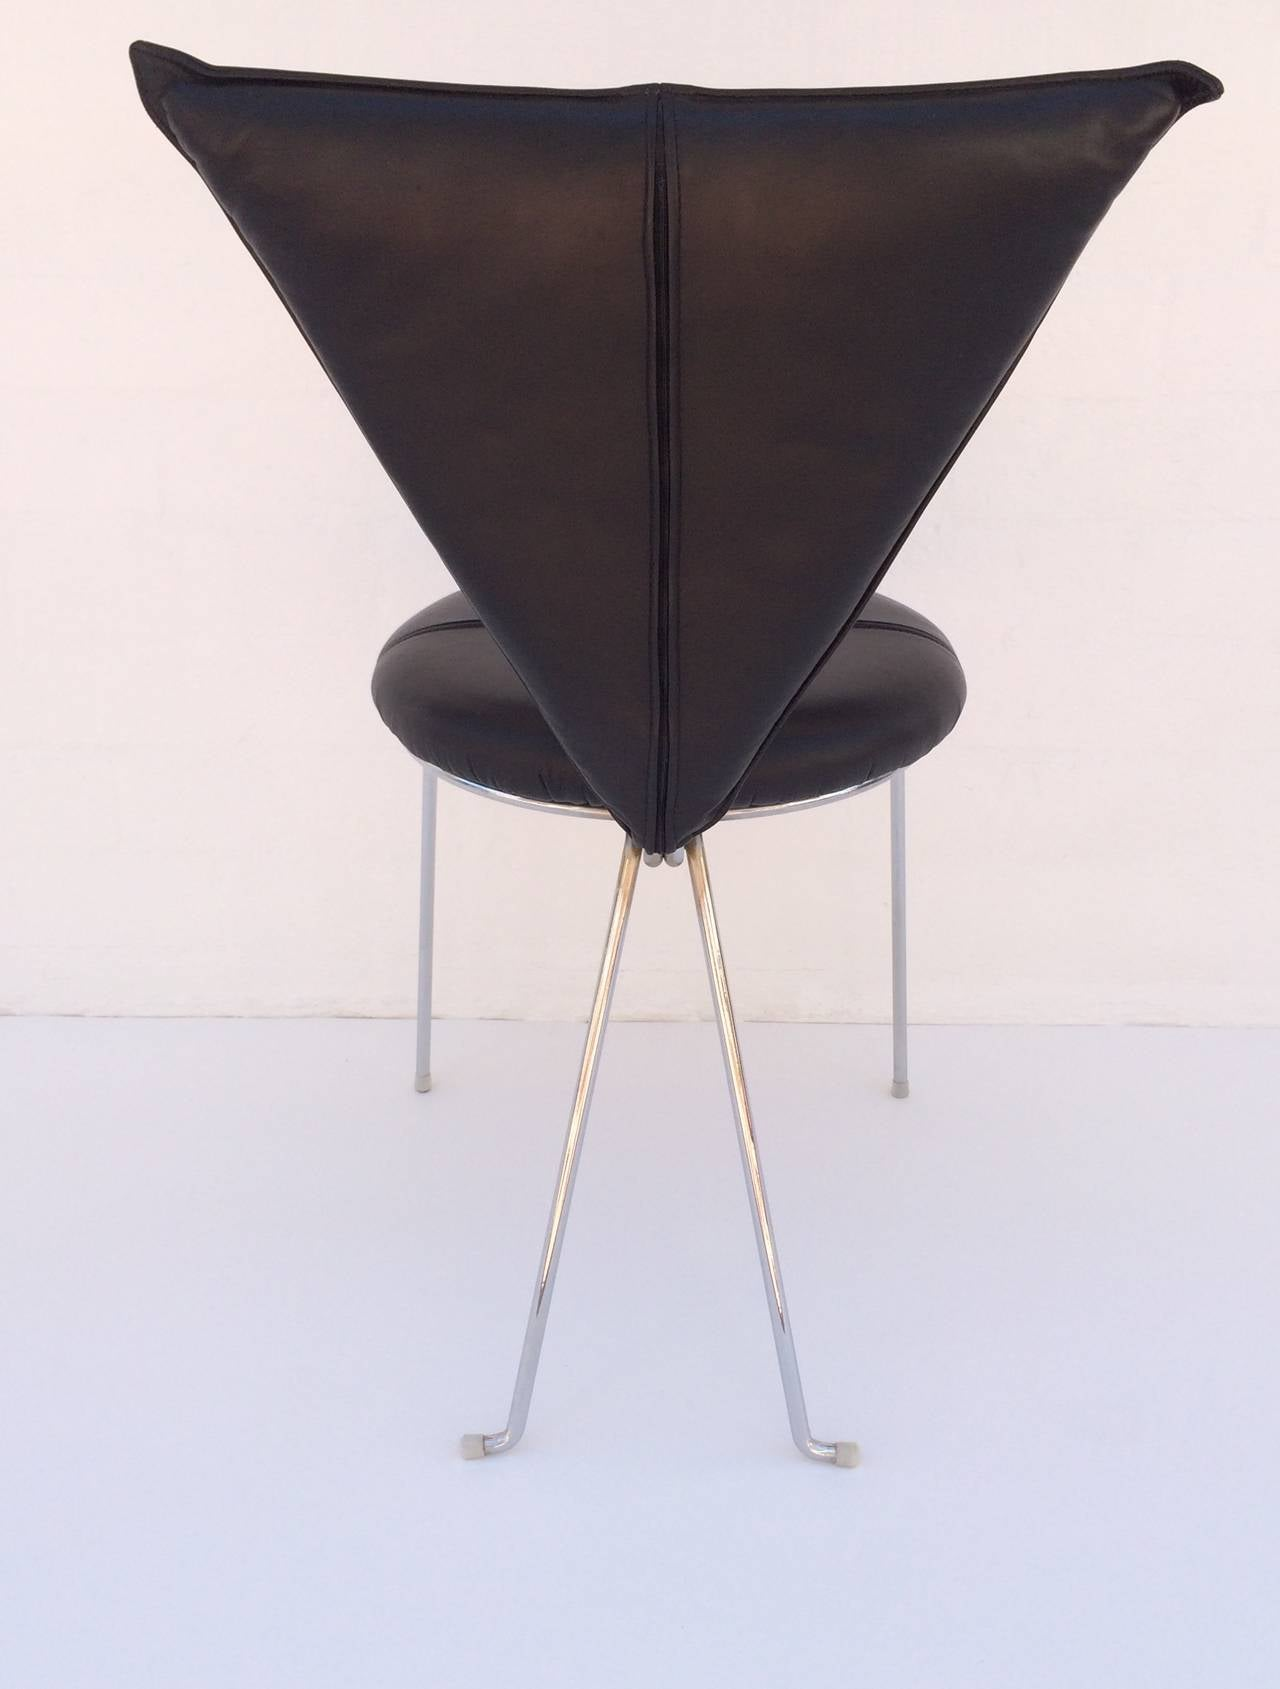 Rare Set of Four Black Leather and Chrome Chairs by Helmut Lubke & Co For Sale 1